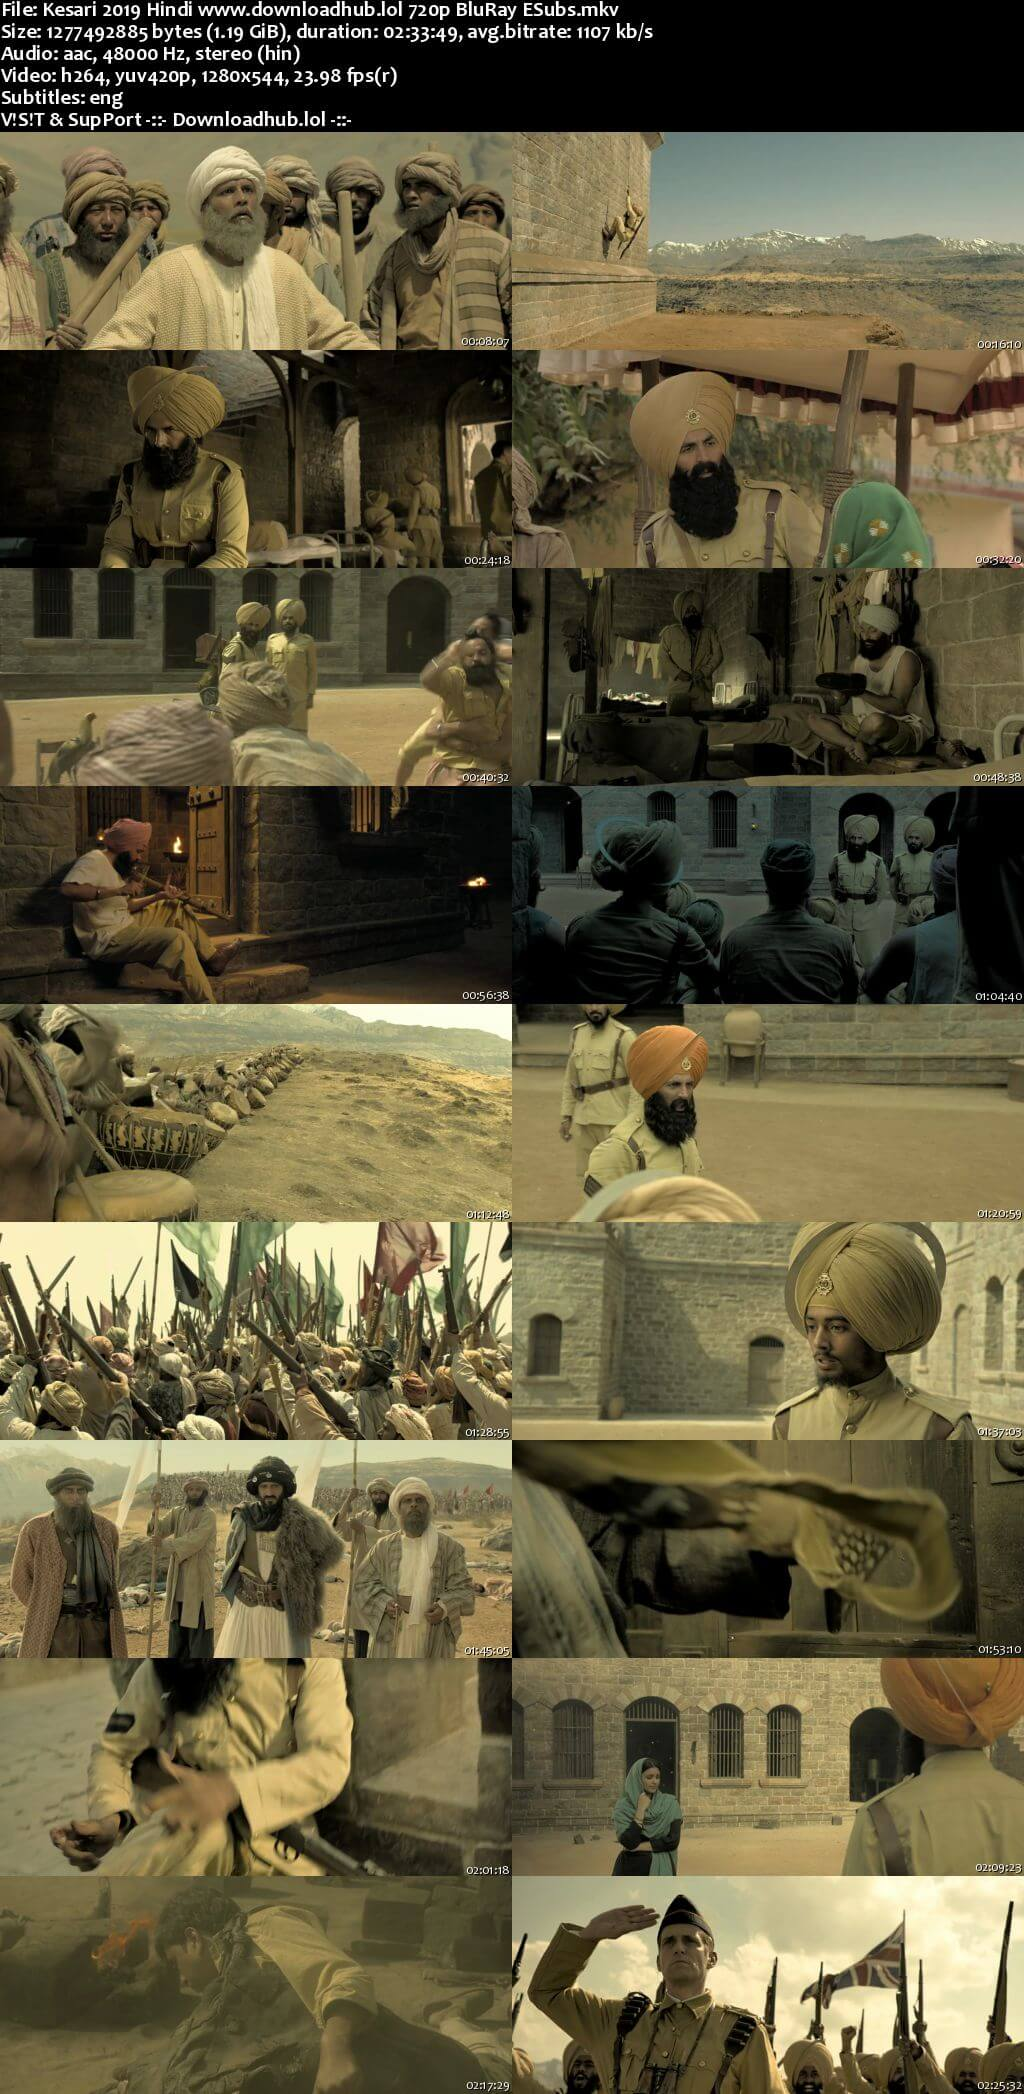 Kesari 2019 Hindi 720p BluRay ESubs